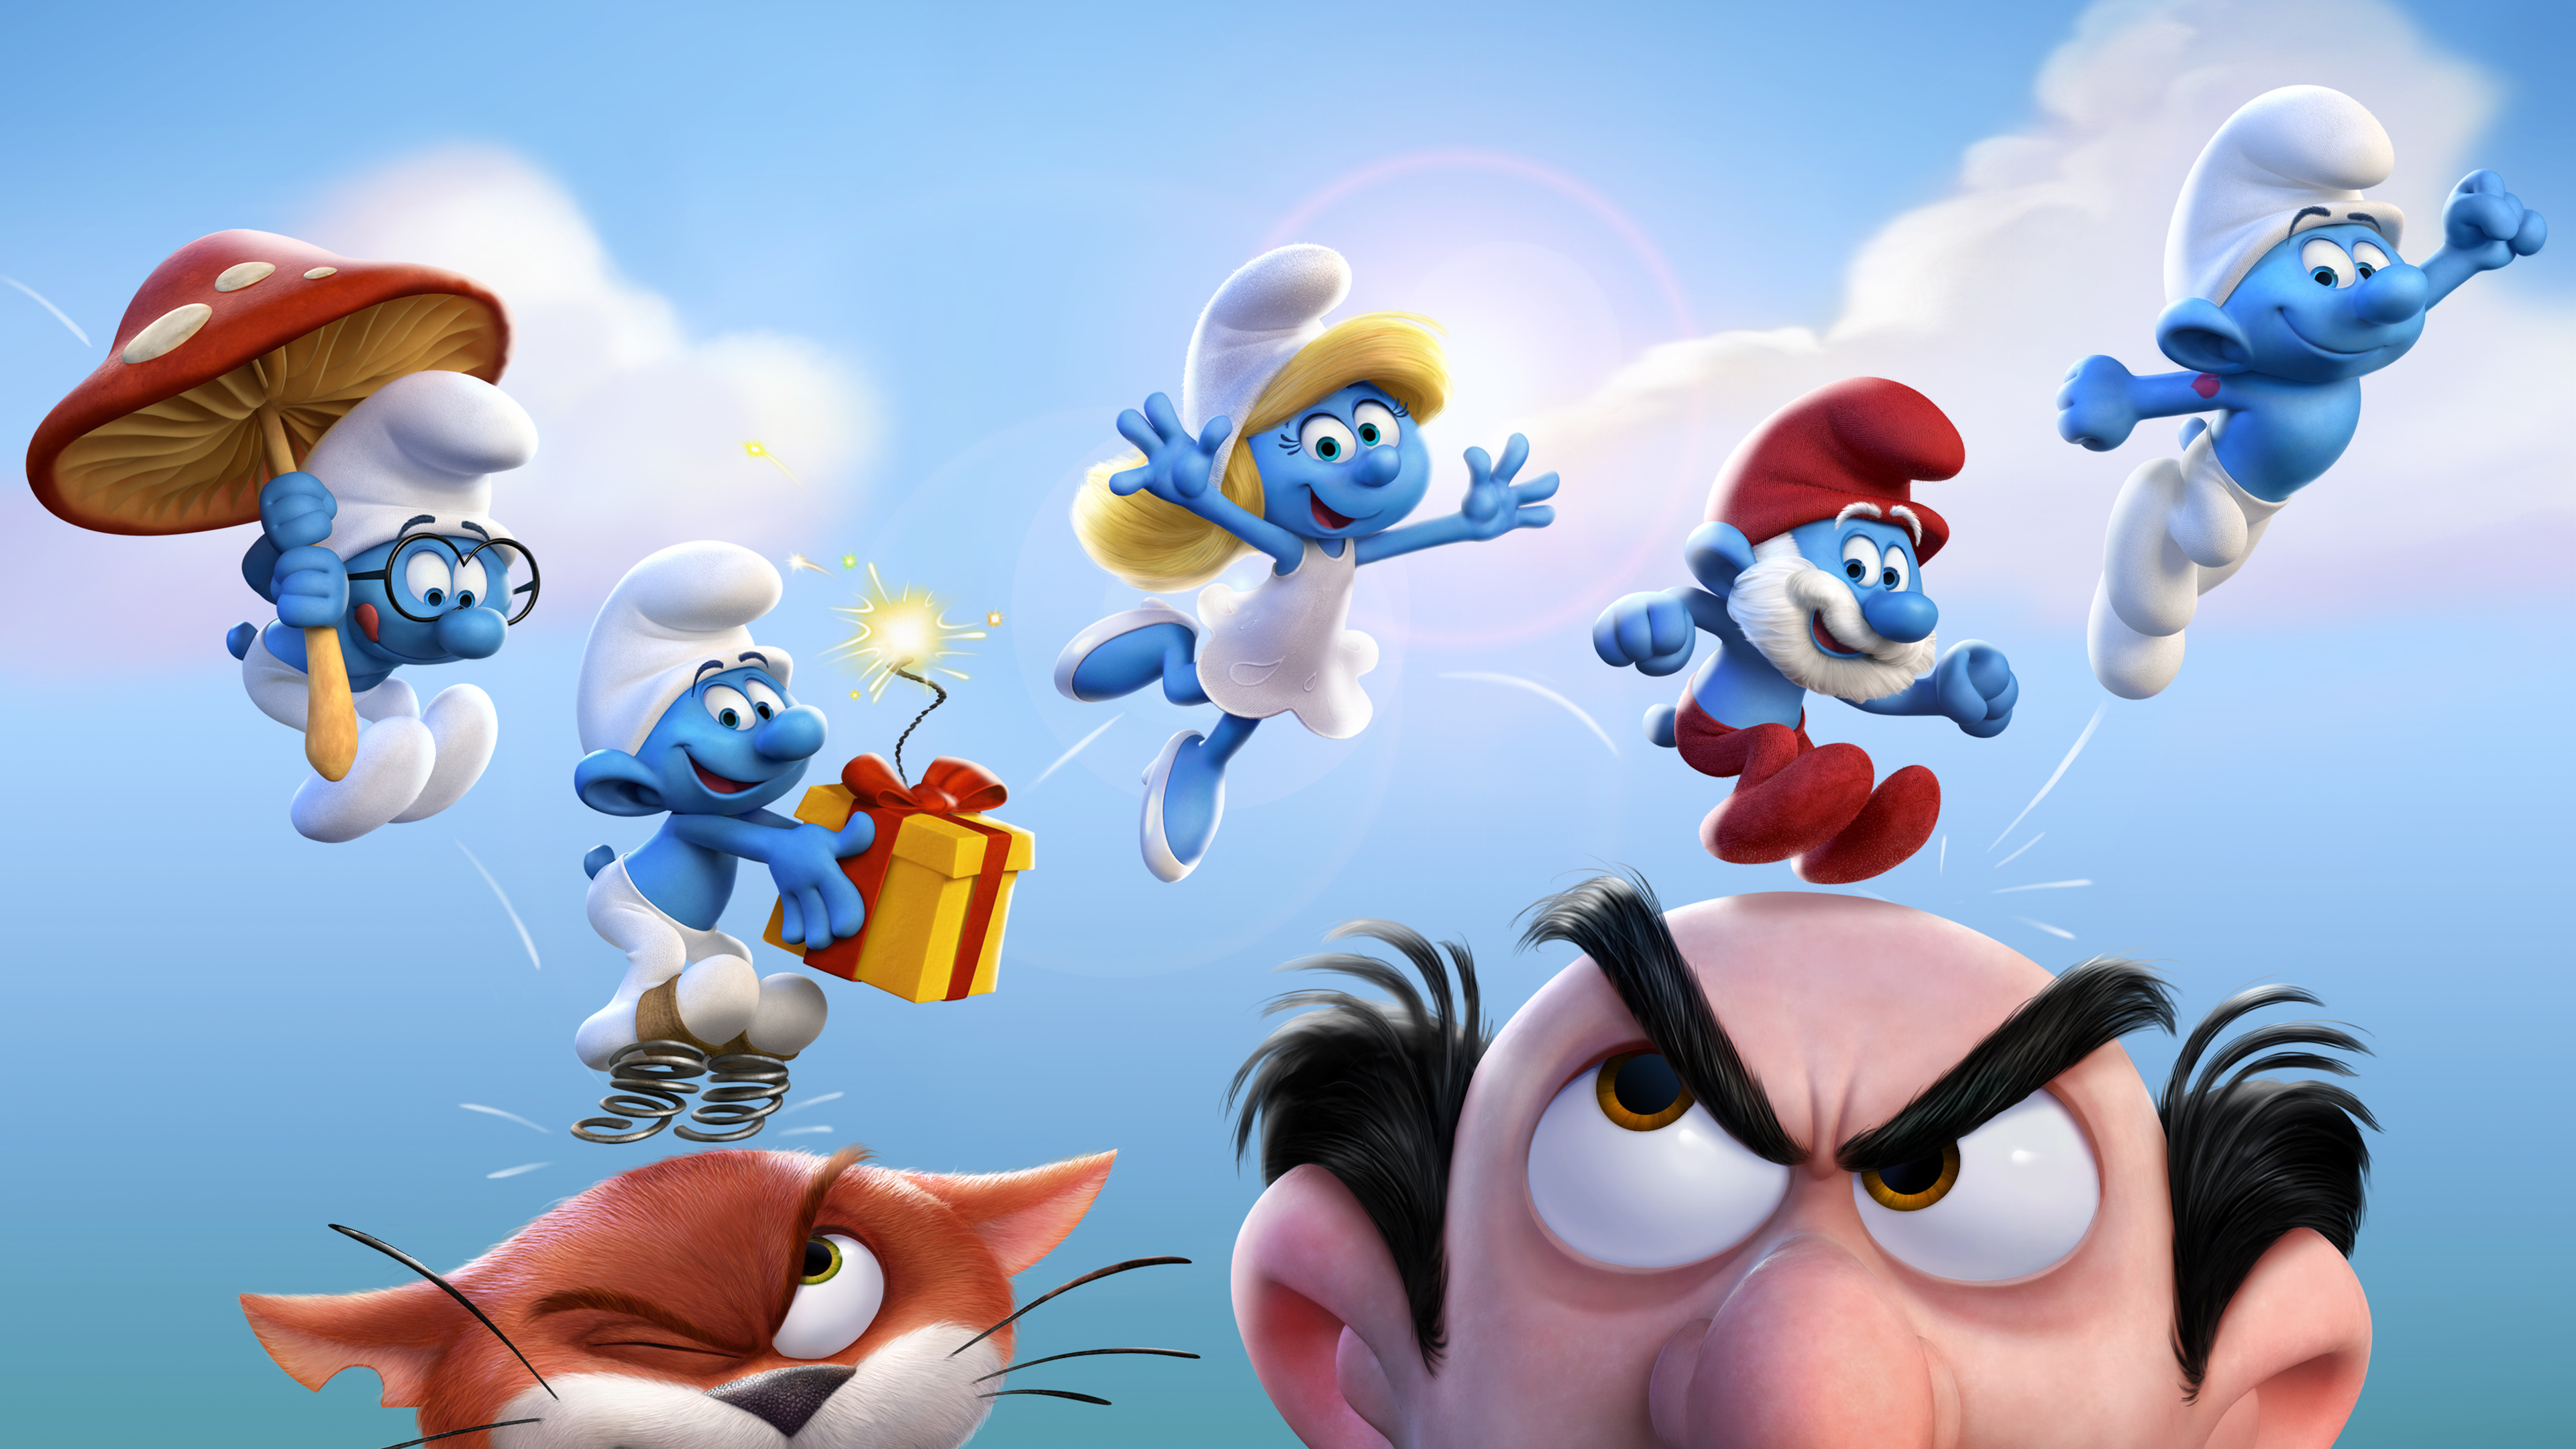 smurfs the lost village official 1536400200 - Smurfs The Lost Village Official - smurfs wallpapers, smurfs the lost village wallpapers, movies wallpapers, animated movies wallpapers, 4k-wallpapers, 2017 movies wallpapers